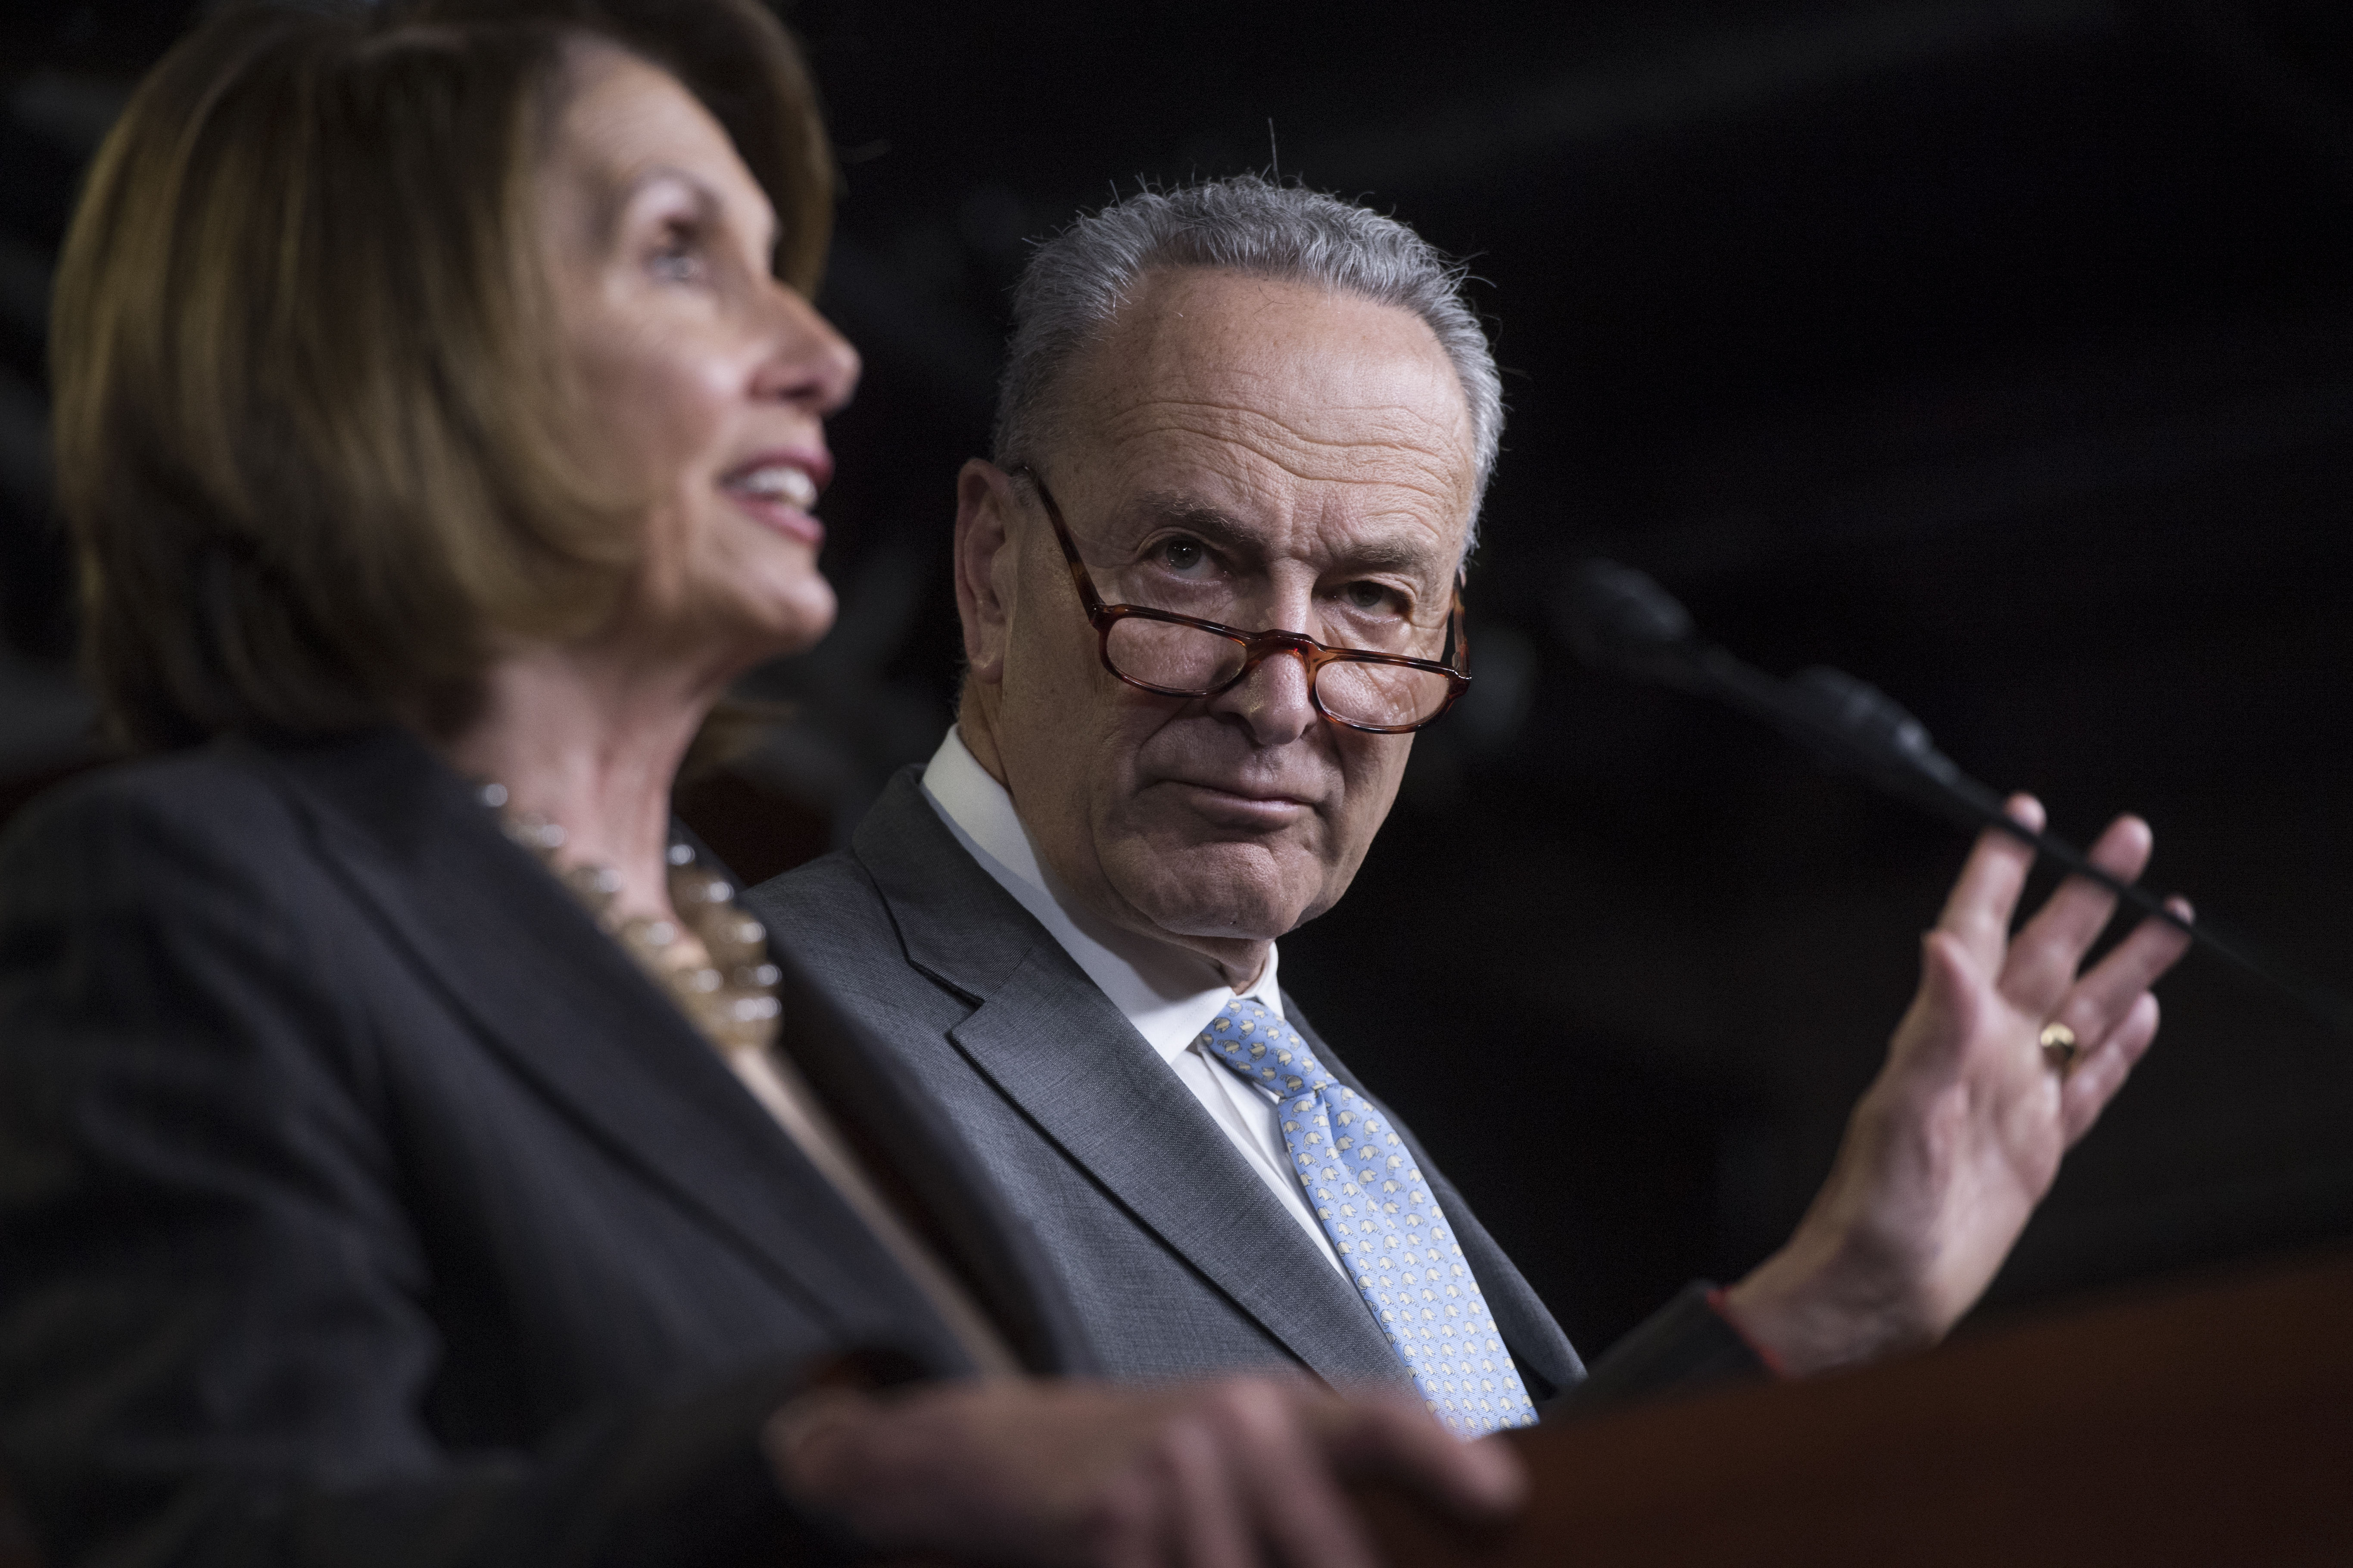 Nancy Pelosi and Chuck Schumer speaking at a press conference